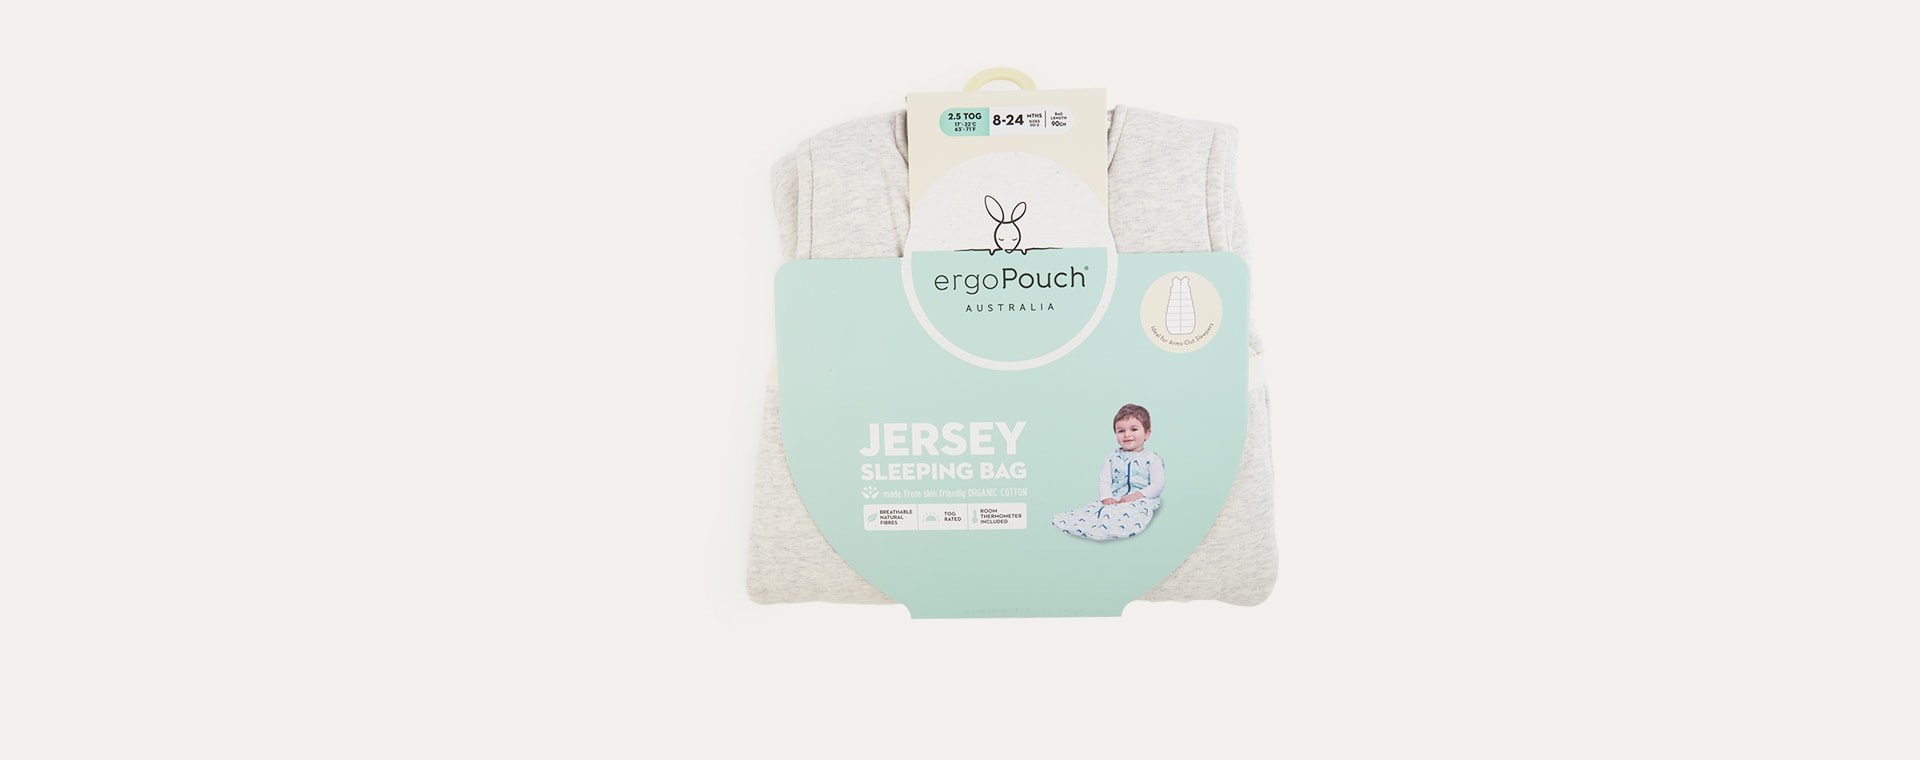 Grey Marle Ergopouch Jersey Sleeping Bag